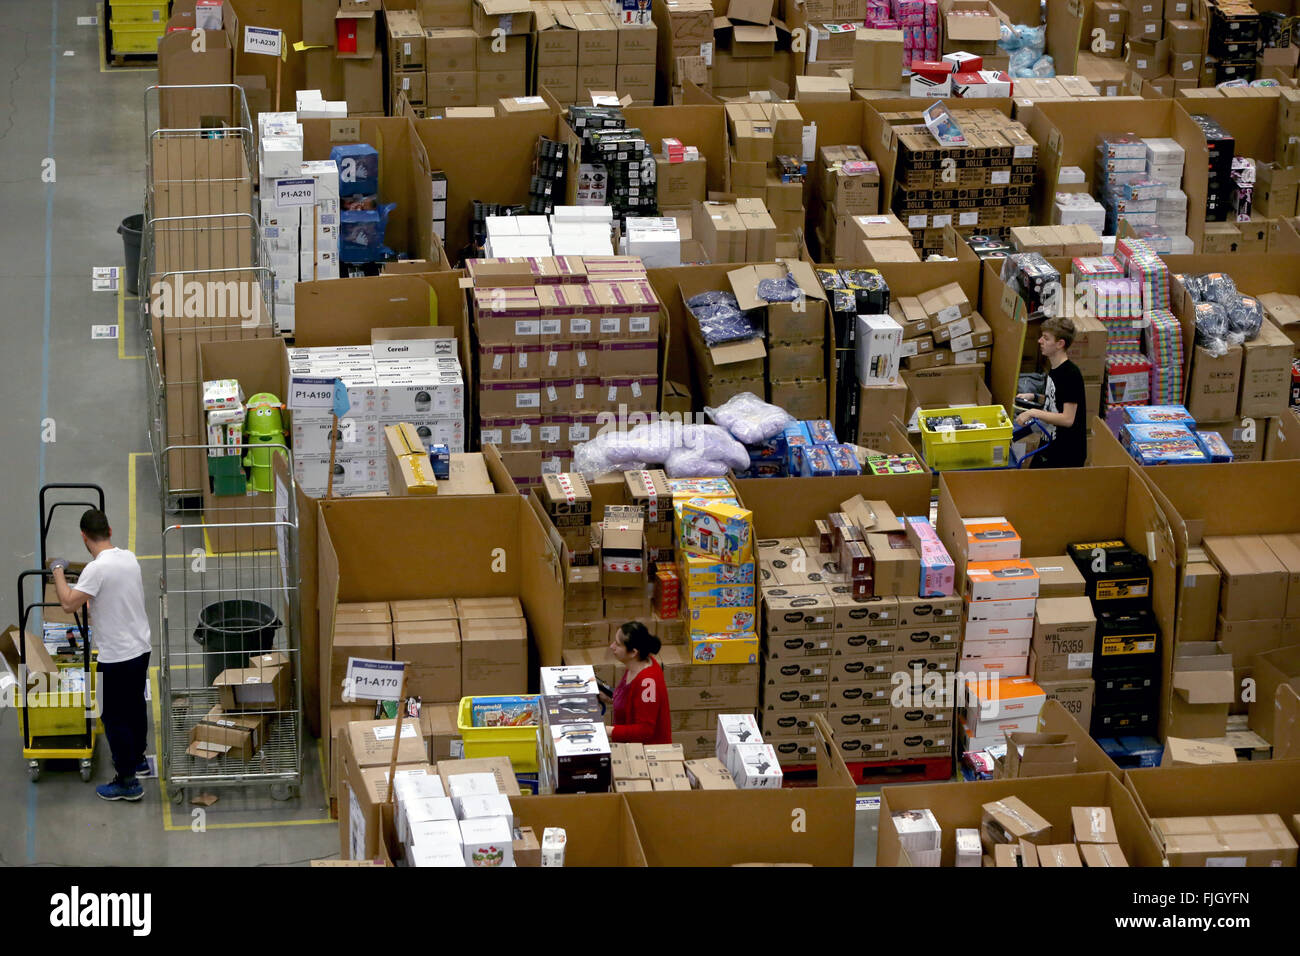 Page 2 Amazon Warehouse Uk High Resolution Stock Photography And Images Alamy